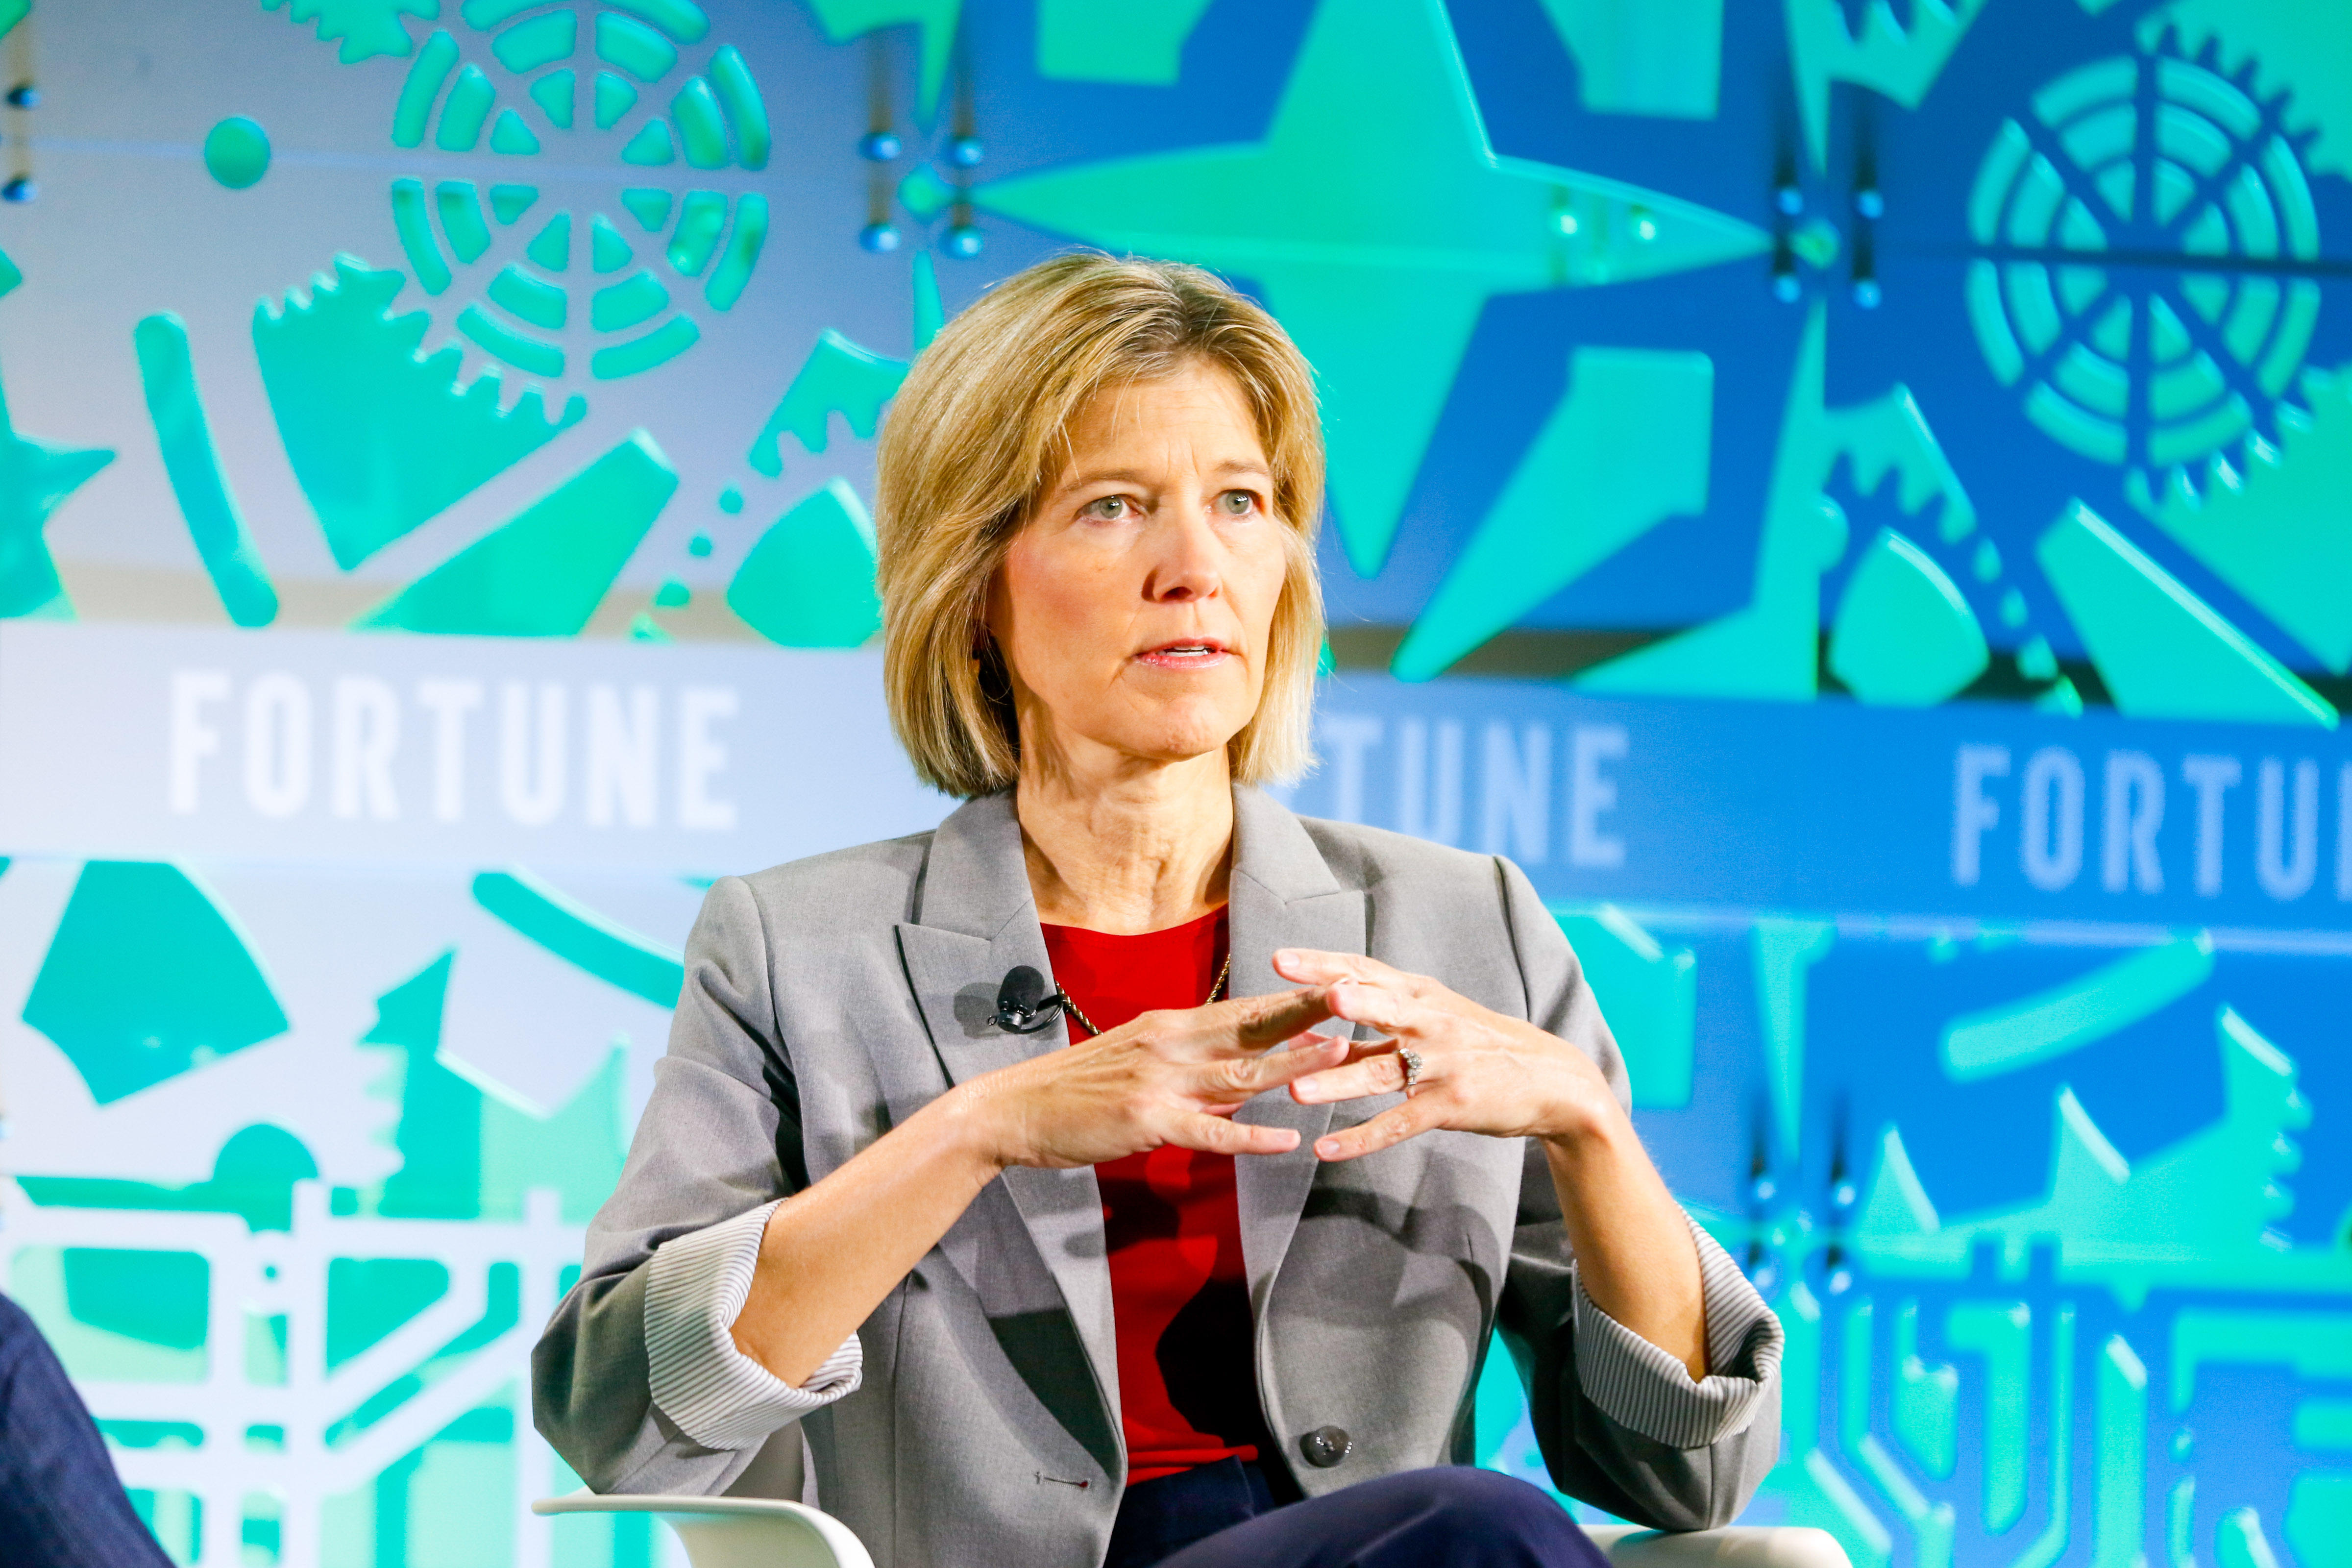 Amy Hess, executive assistant director of the FBI's criminal, cyber, response and services branch, called out China's hacking and other tactics at Fortune's Brainstorm Tech conference in Aspen, Colo.